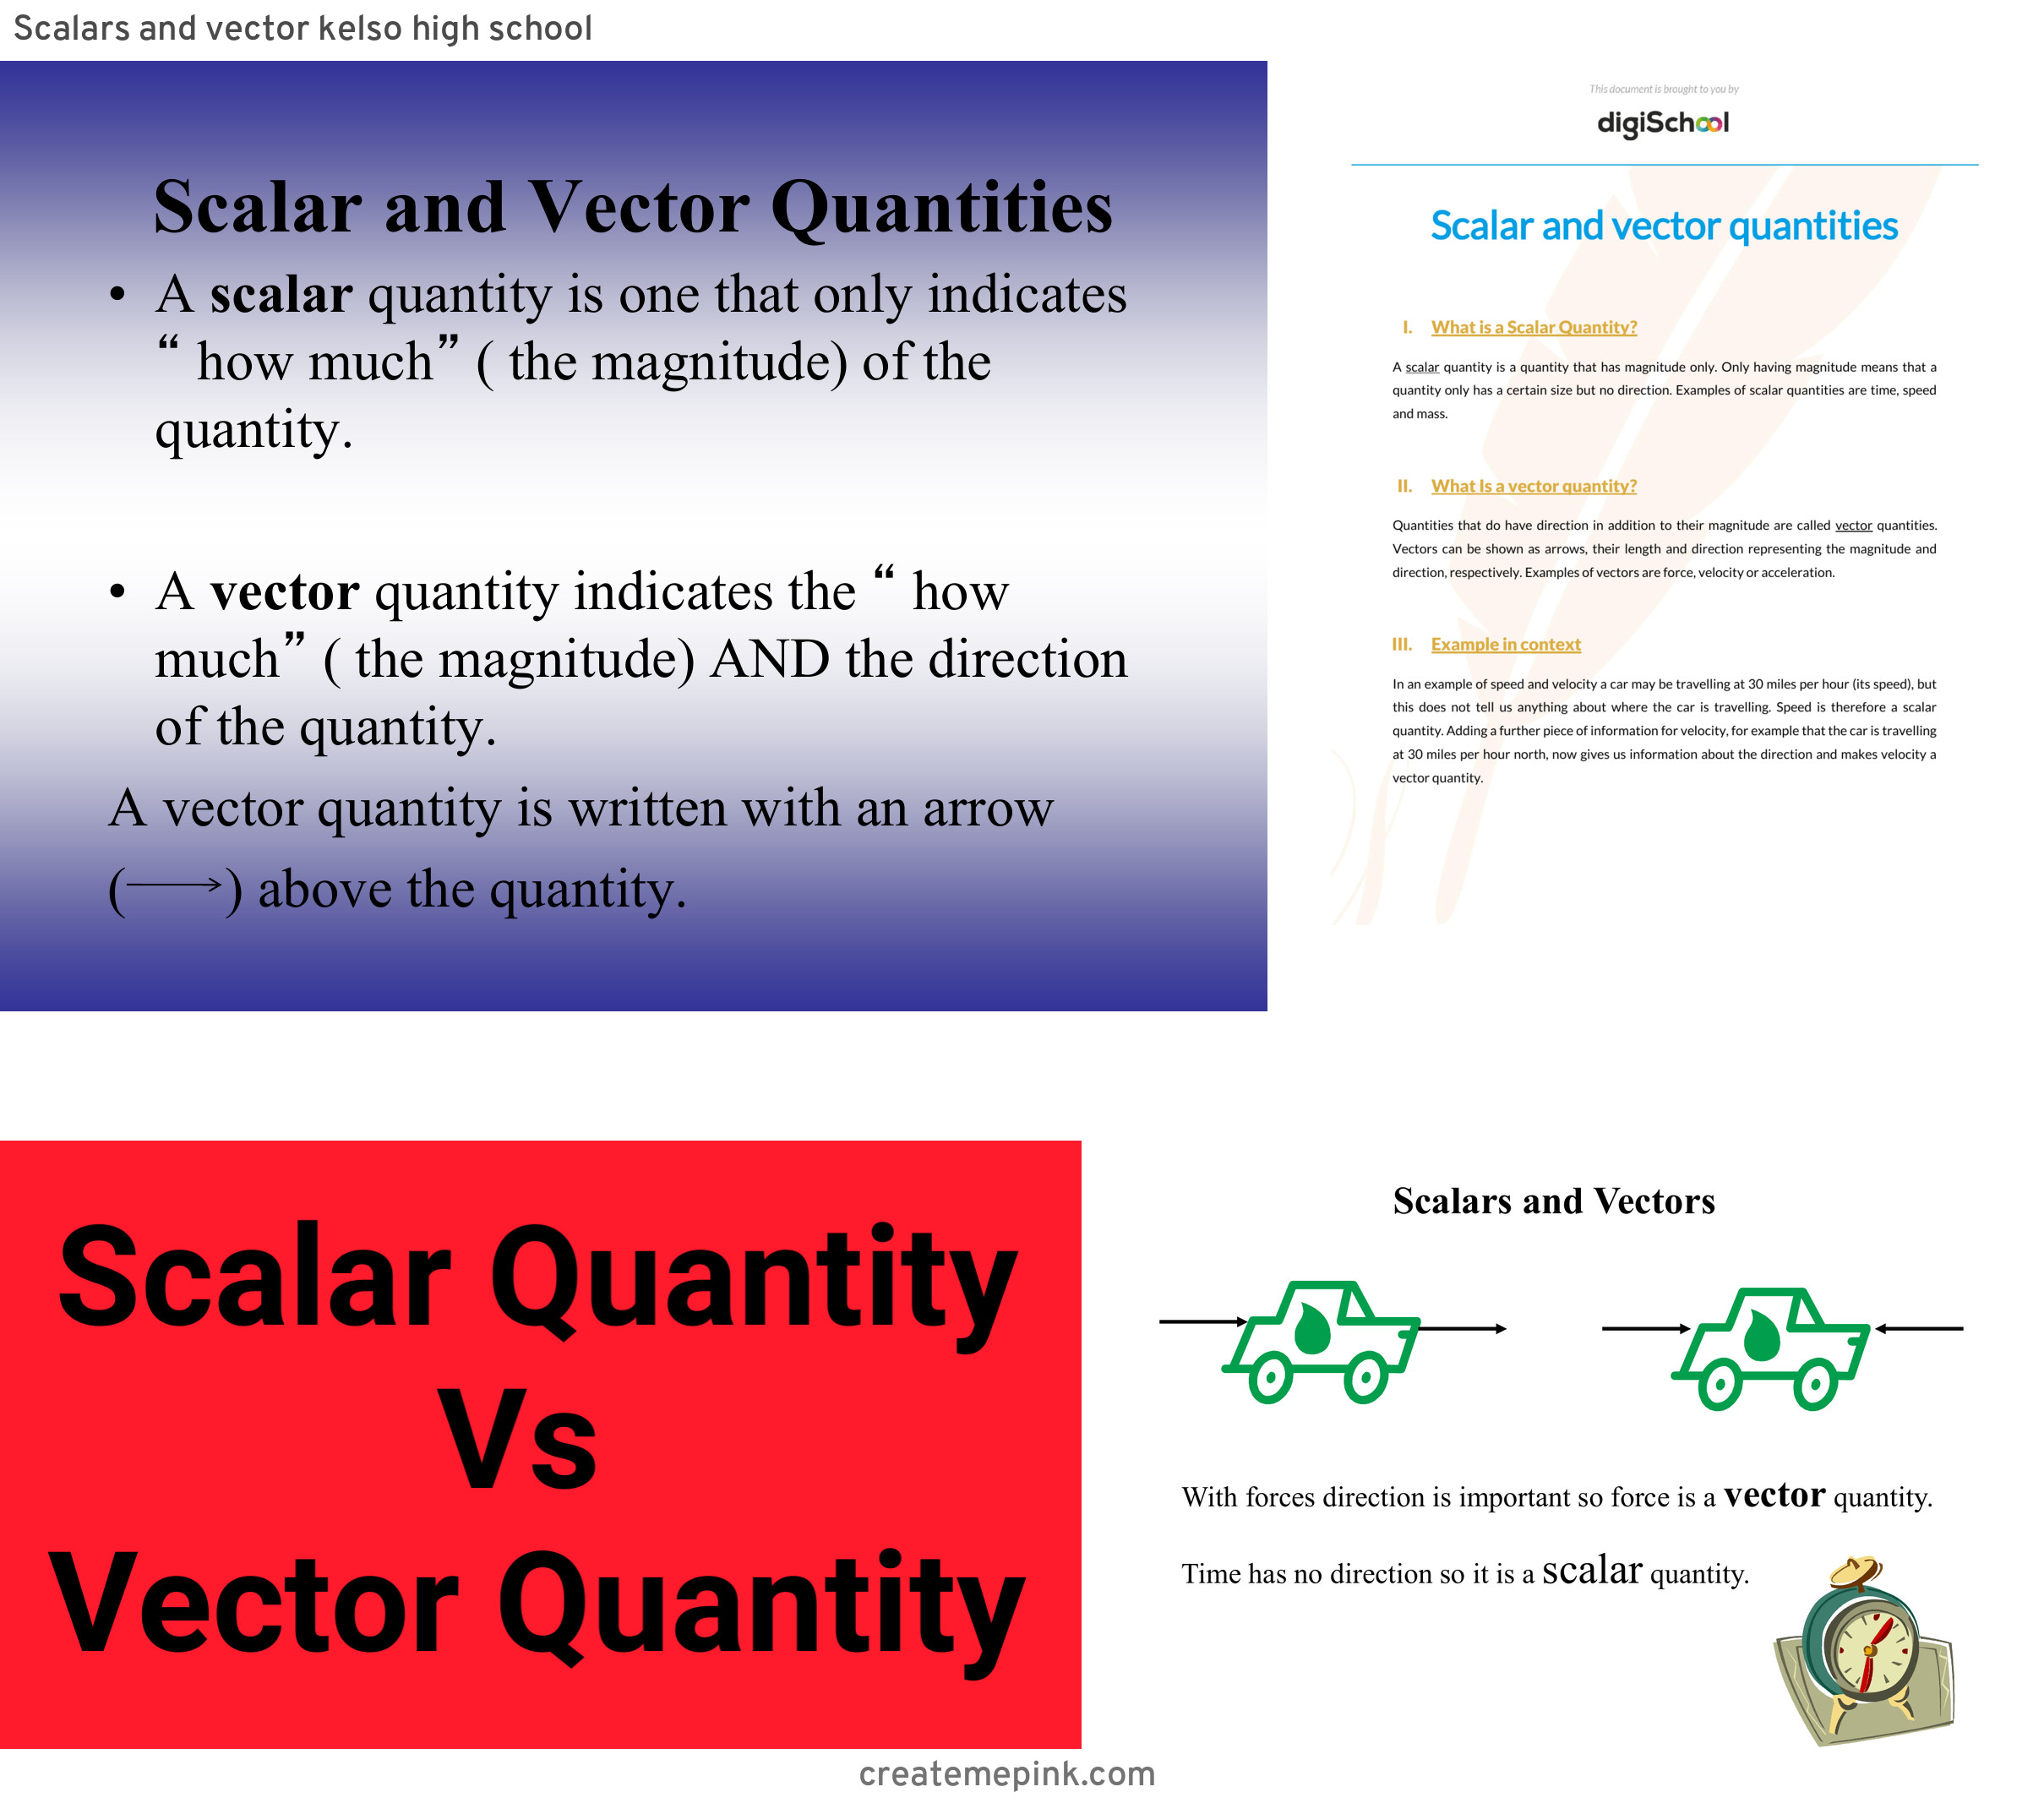 Vector Quantity: Scalars And Vector Kelso High School